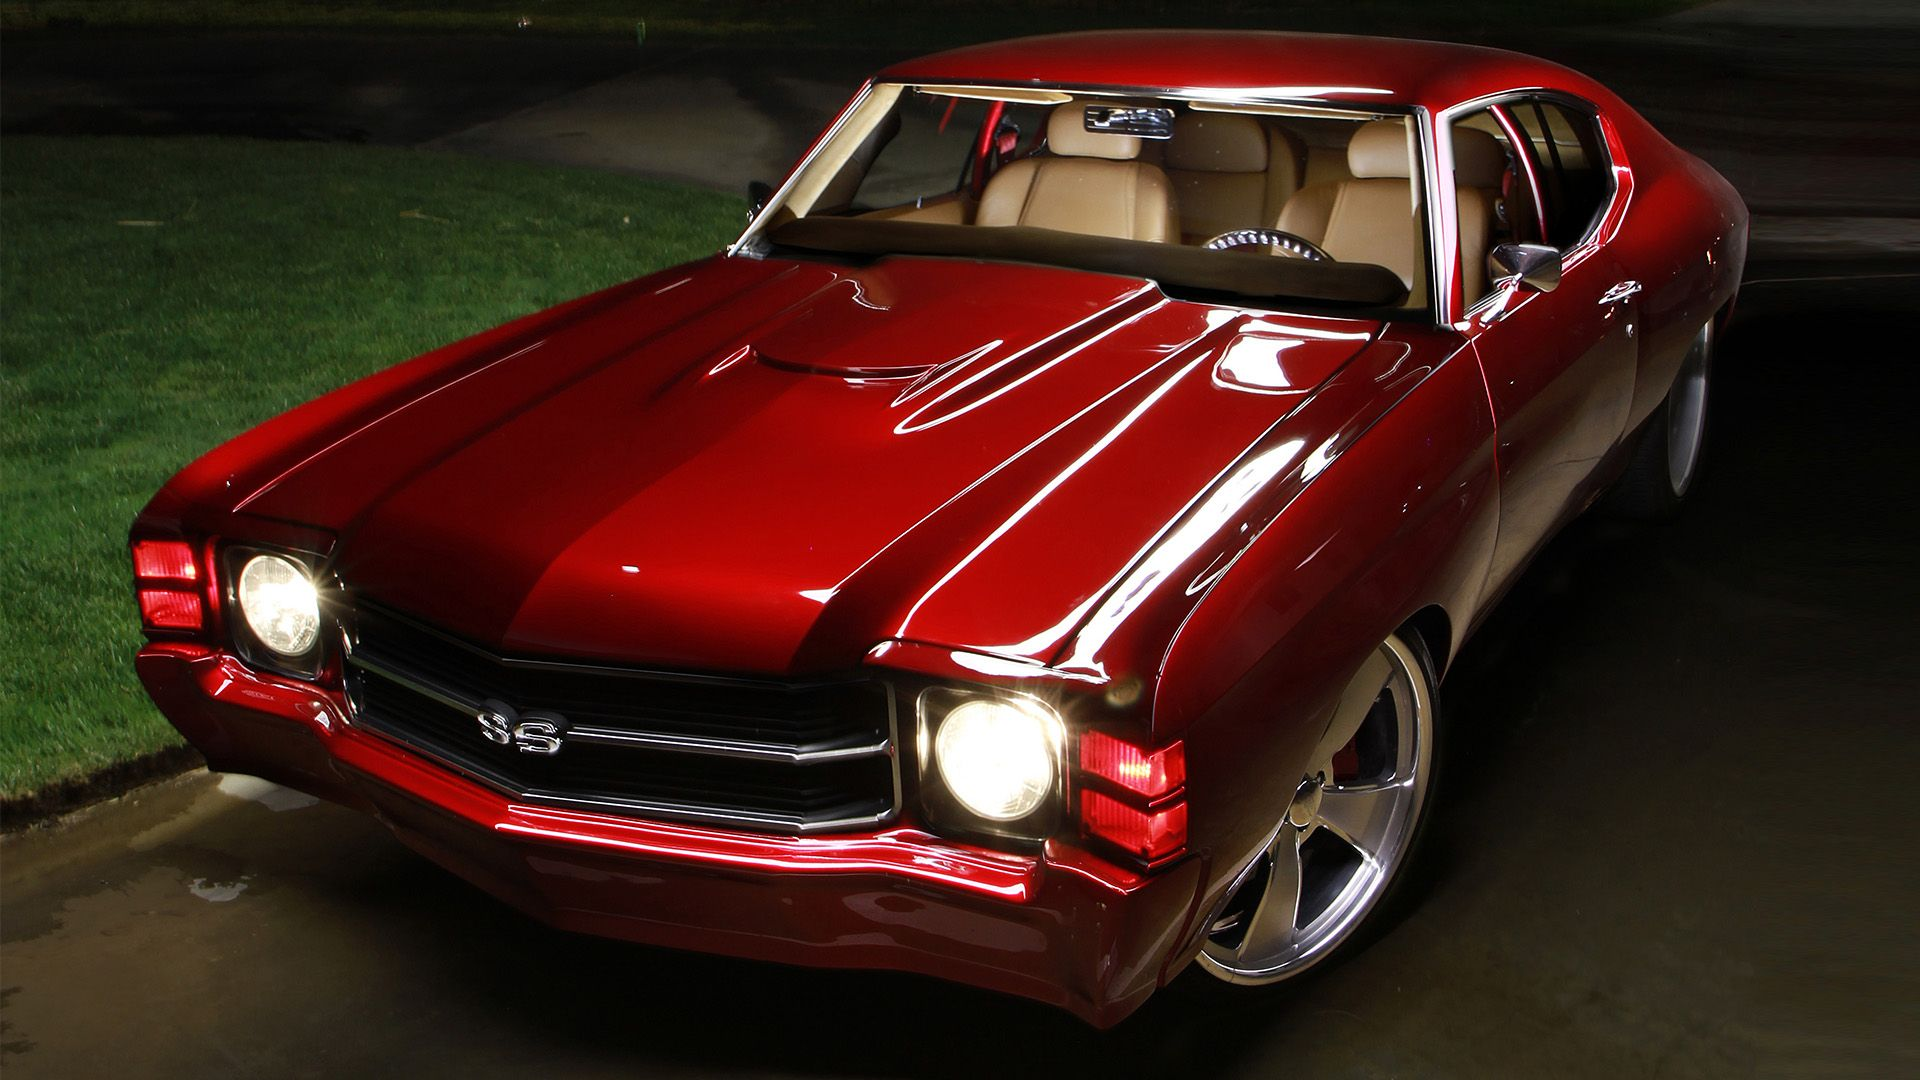 71 Chevy Chevelle SS: Old School Roots, New